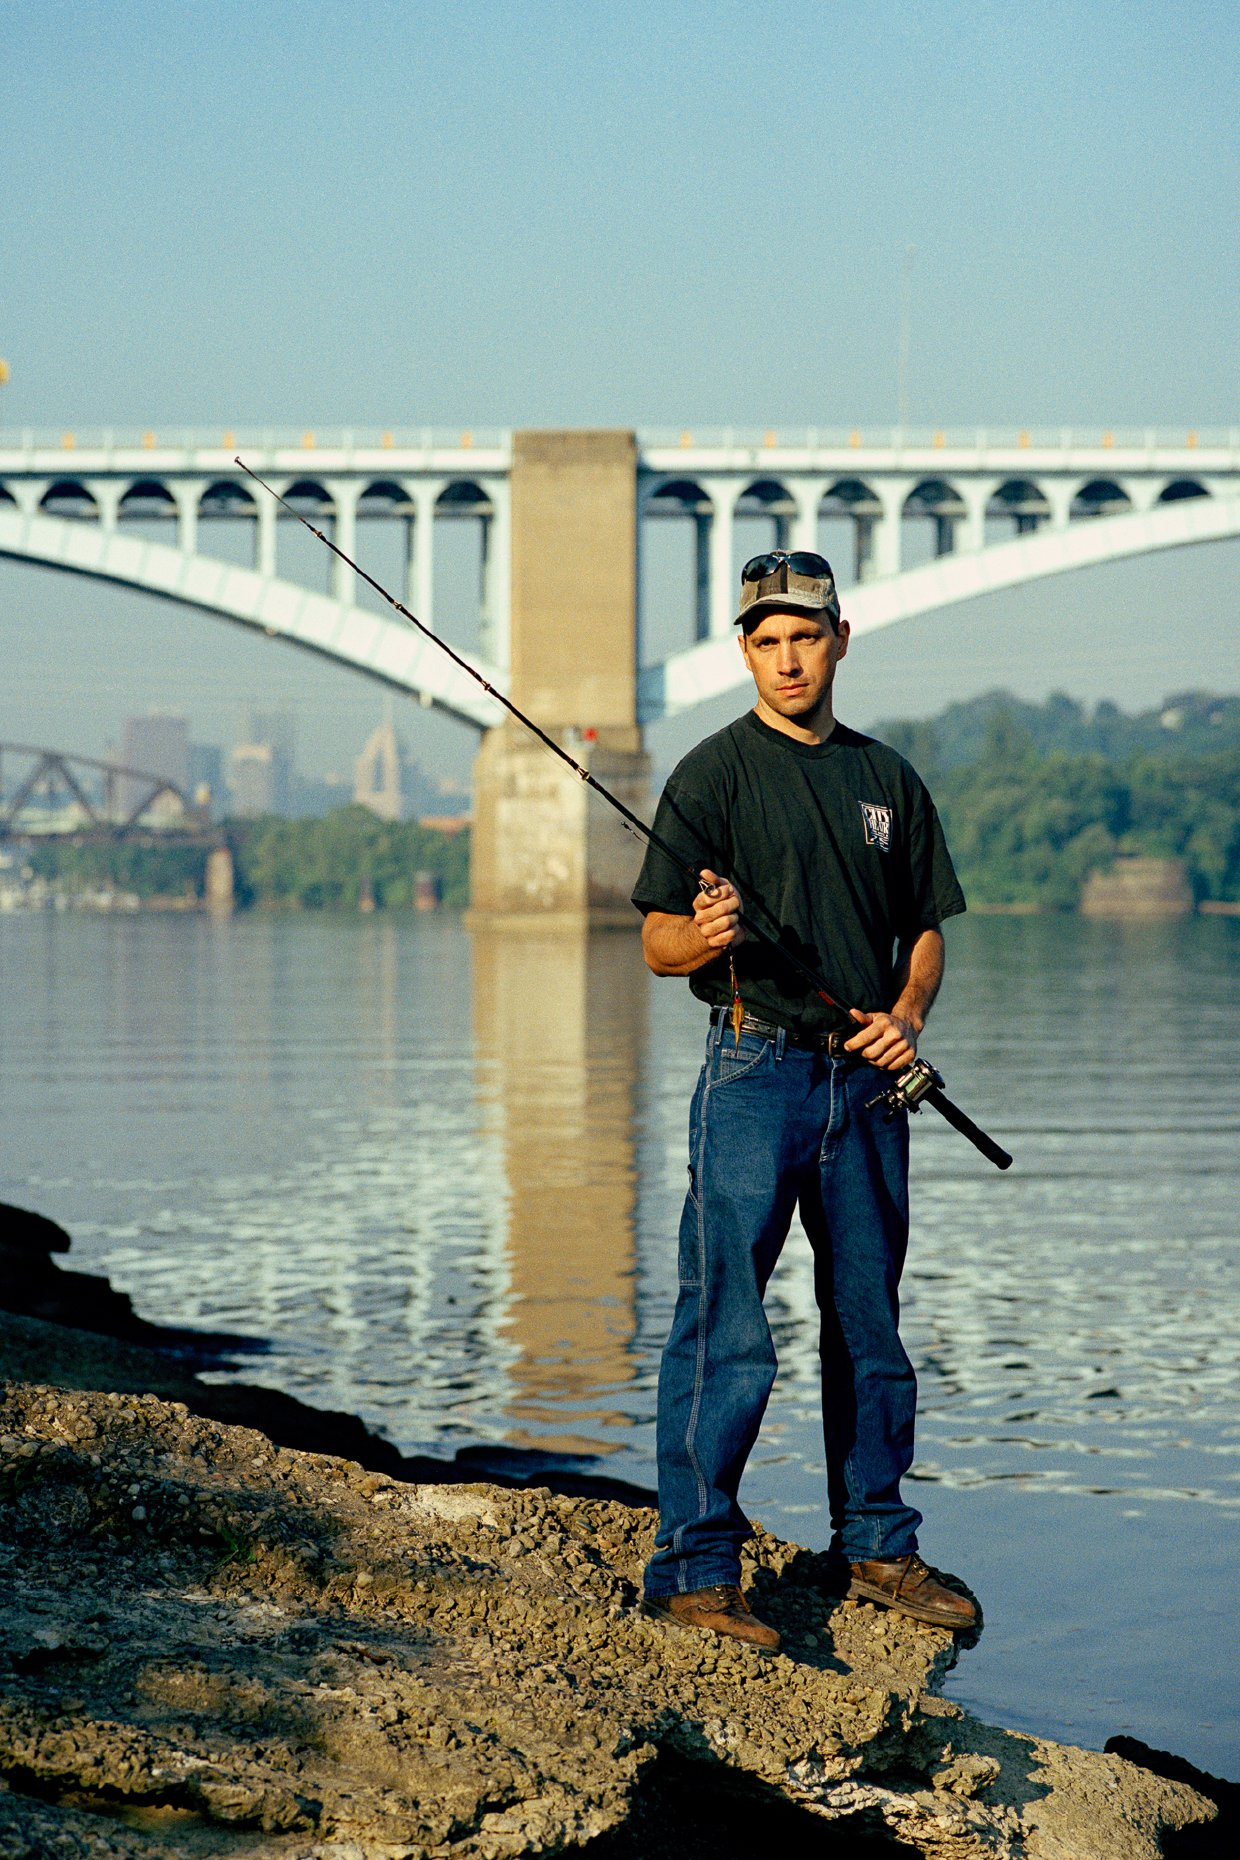 Tim Kaulen, Artist and Urban Fisherman